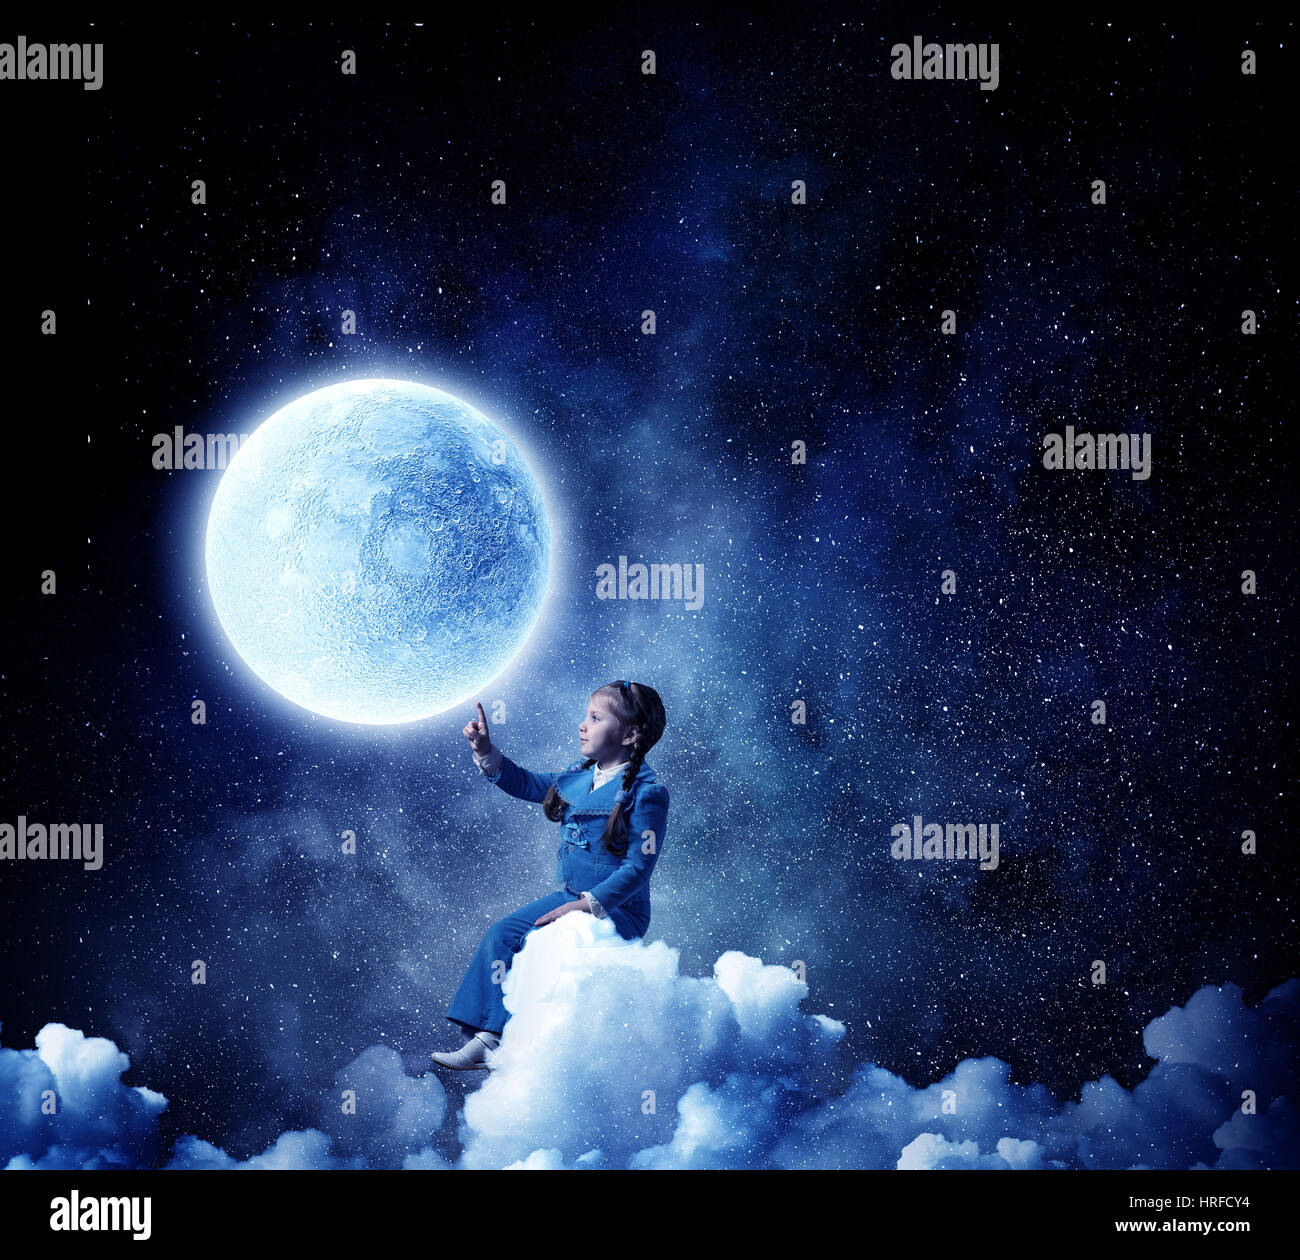 Kids at night with moon royalty free stock photography image - Silhouette Of Kid Girl Against Moon Planet In Night Sky Sergey Nivens Alamy Stock Photo